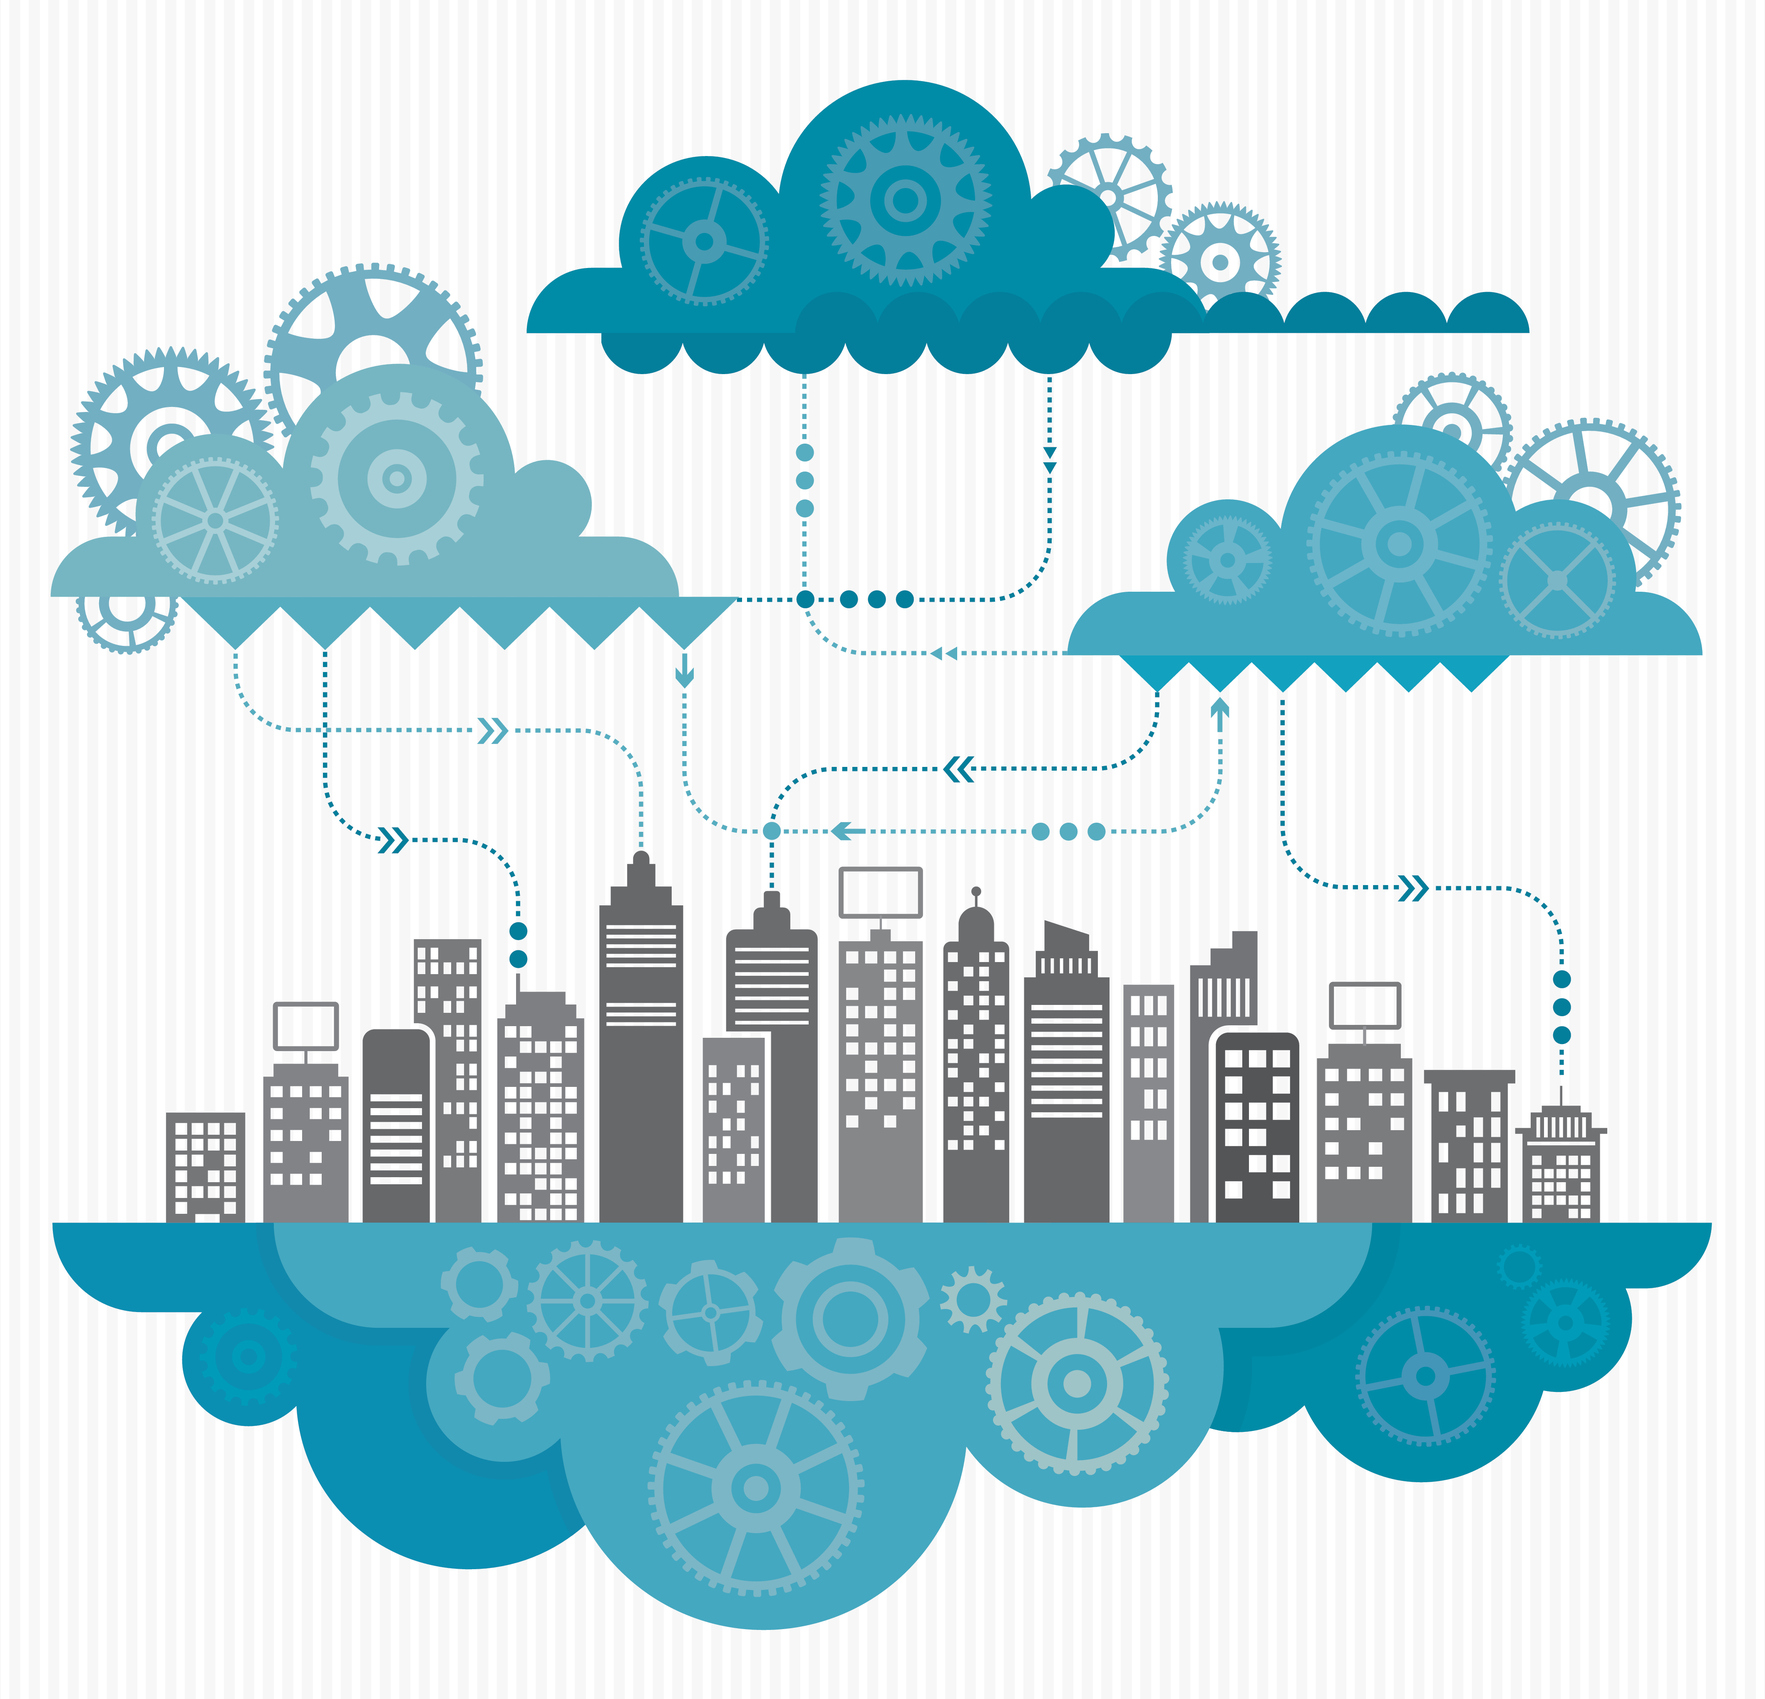 There are a number of fundamental differences between an on-premises and a cloud environment